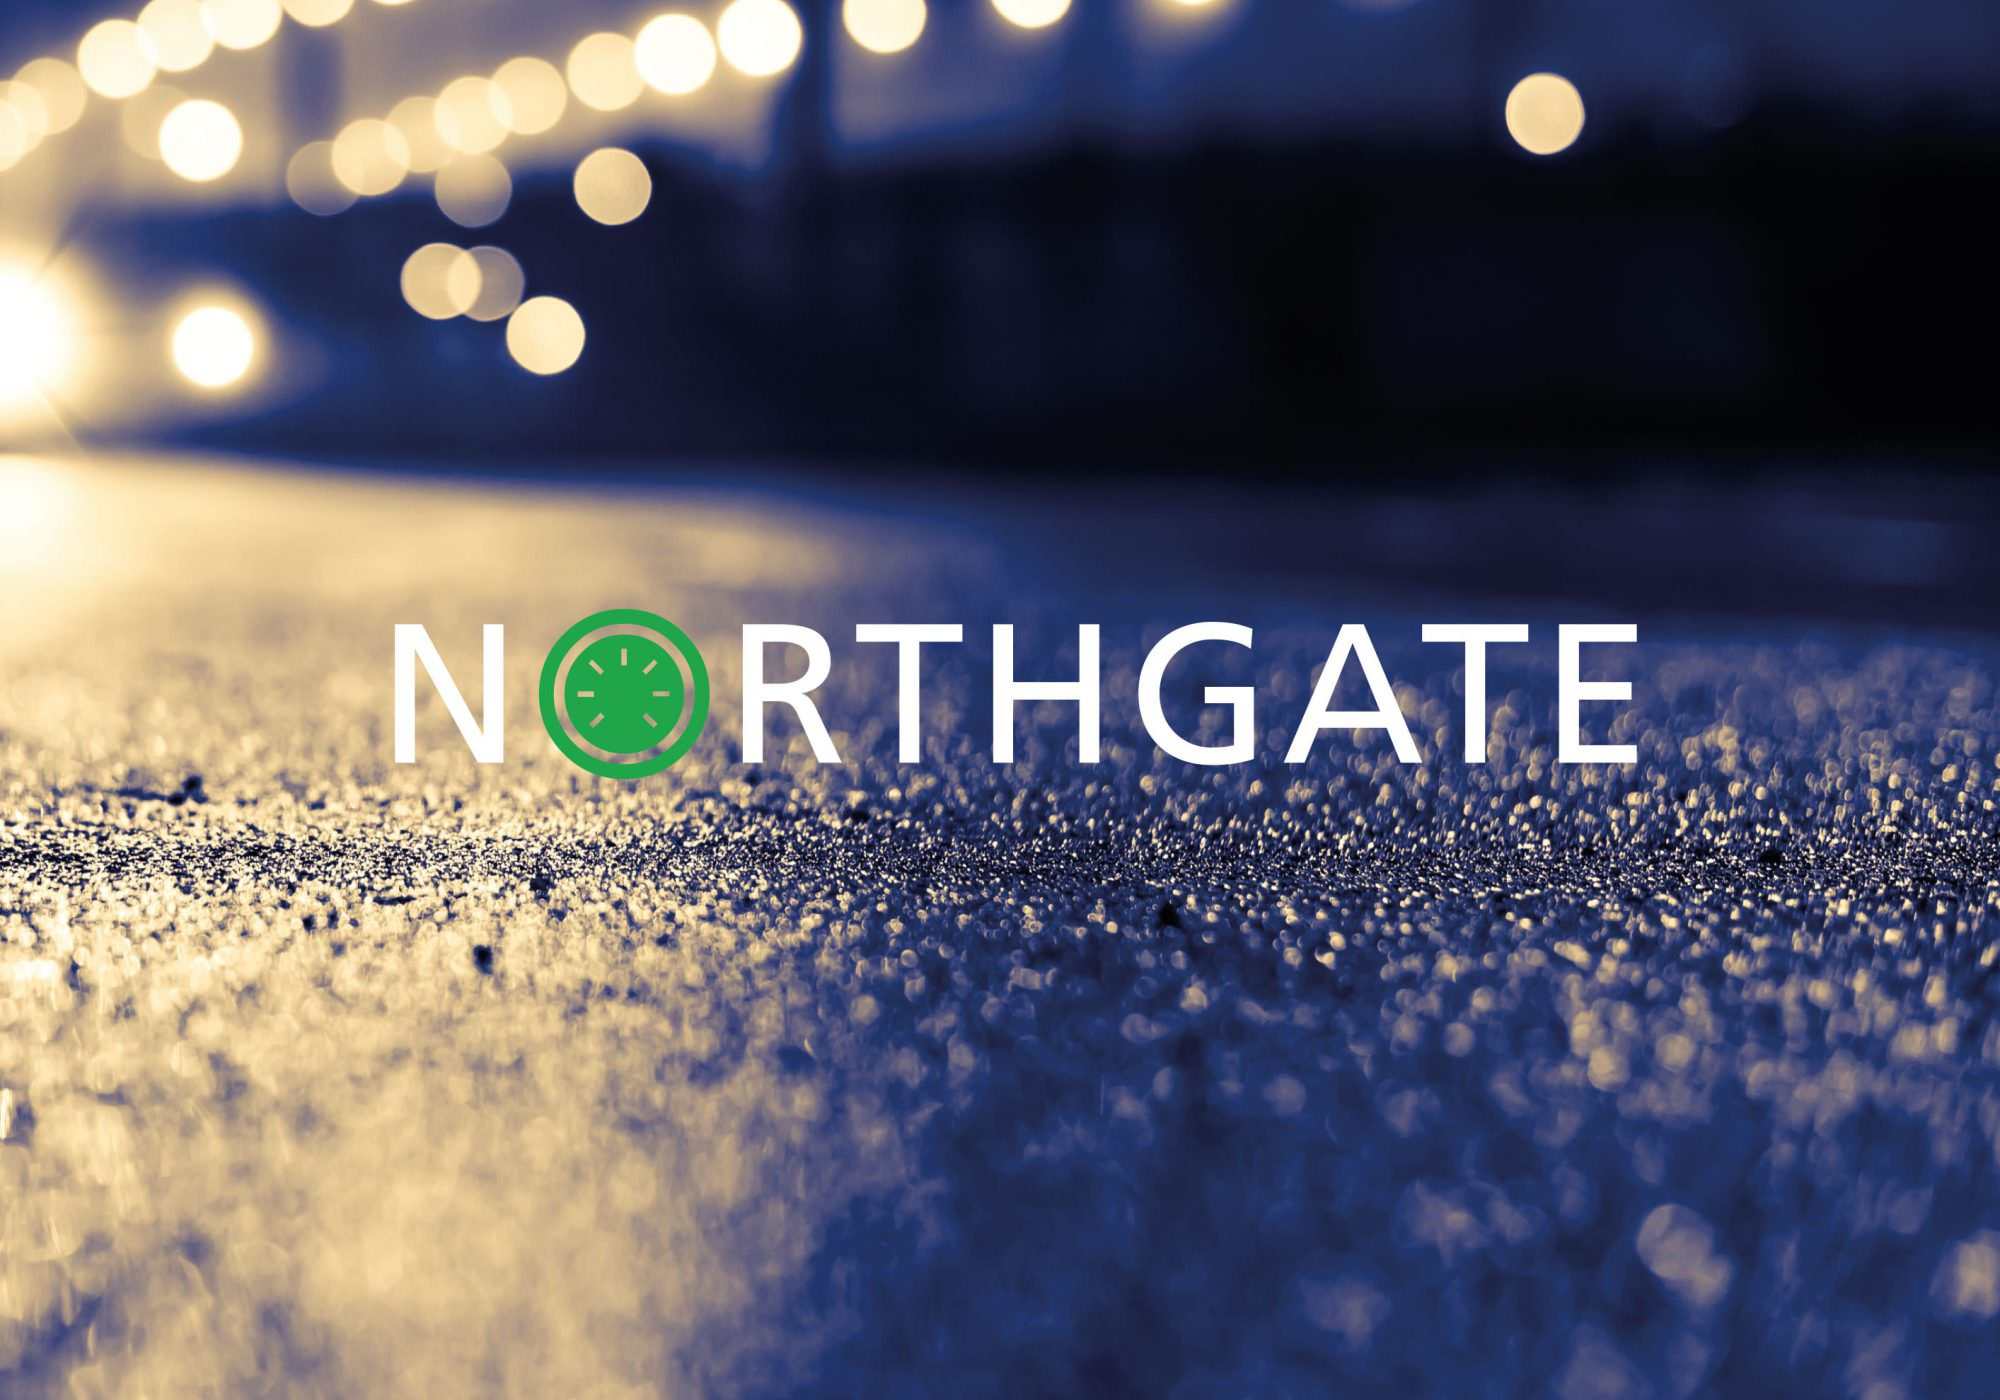 Northgate Vehicle Hire - Web Design & Marketing Material, Shropshire